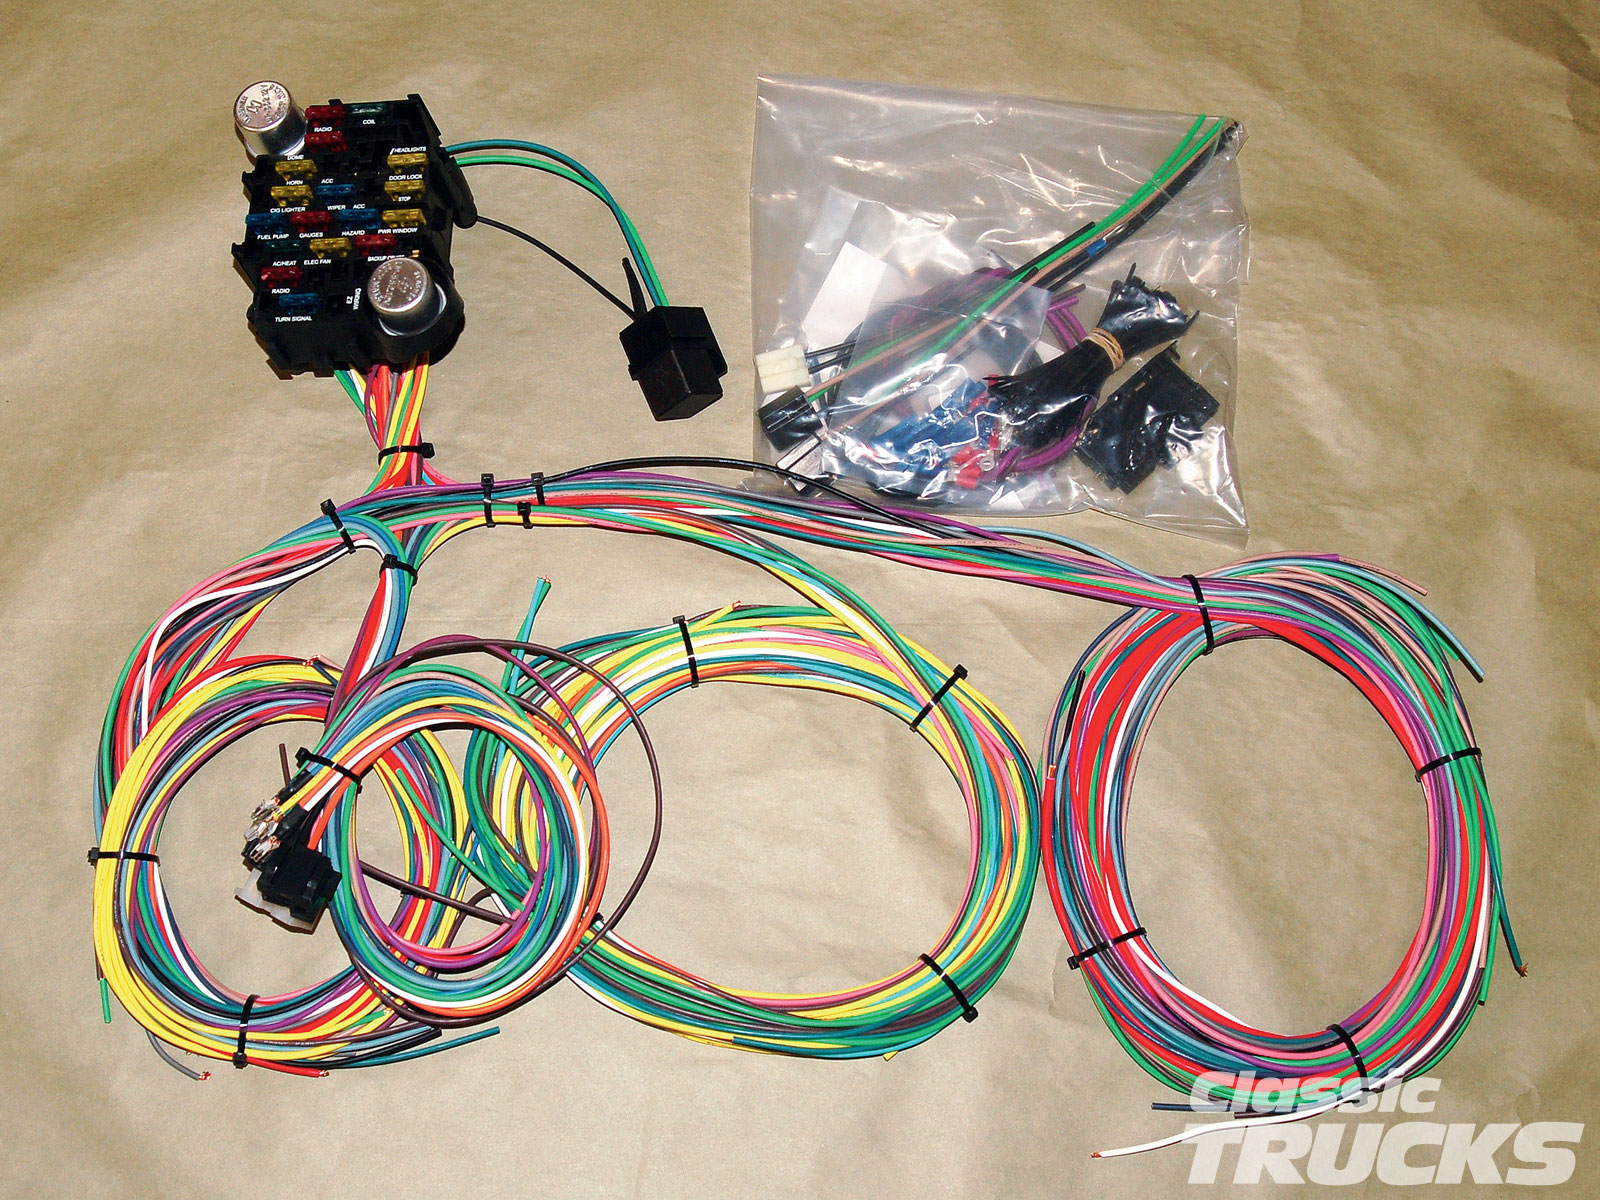 1010clt 02 o aftermarket wiring harness install kit?resize=640%2C480 how much does a wire harness cost to replace hobbiesxstyle how much does it cost to replace a wiring harness at n-0.co